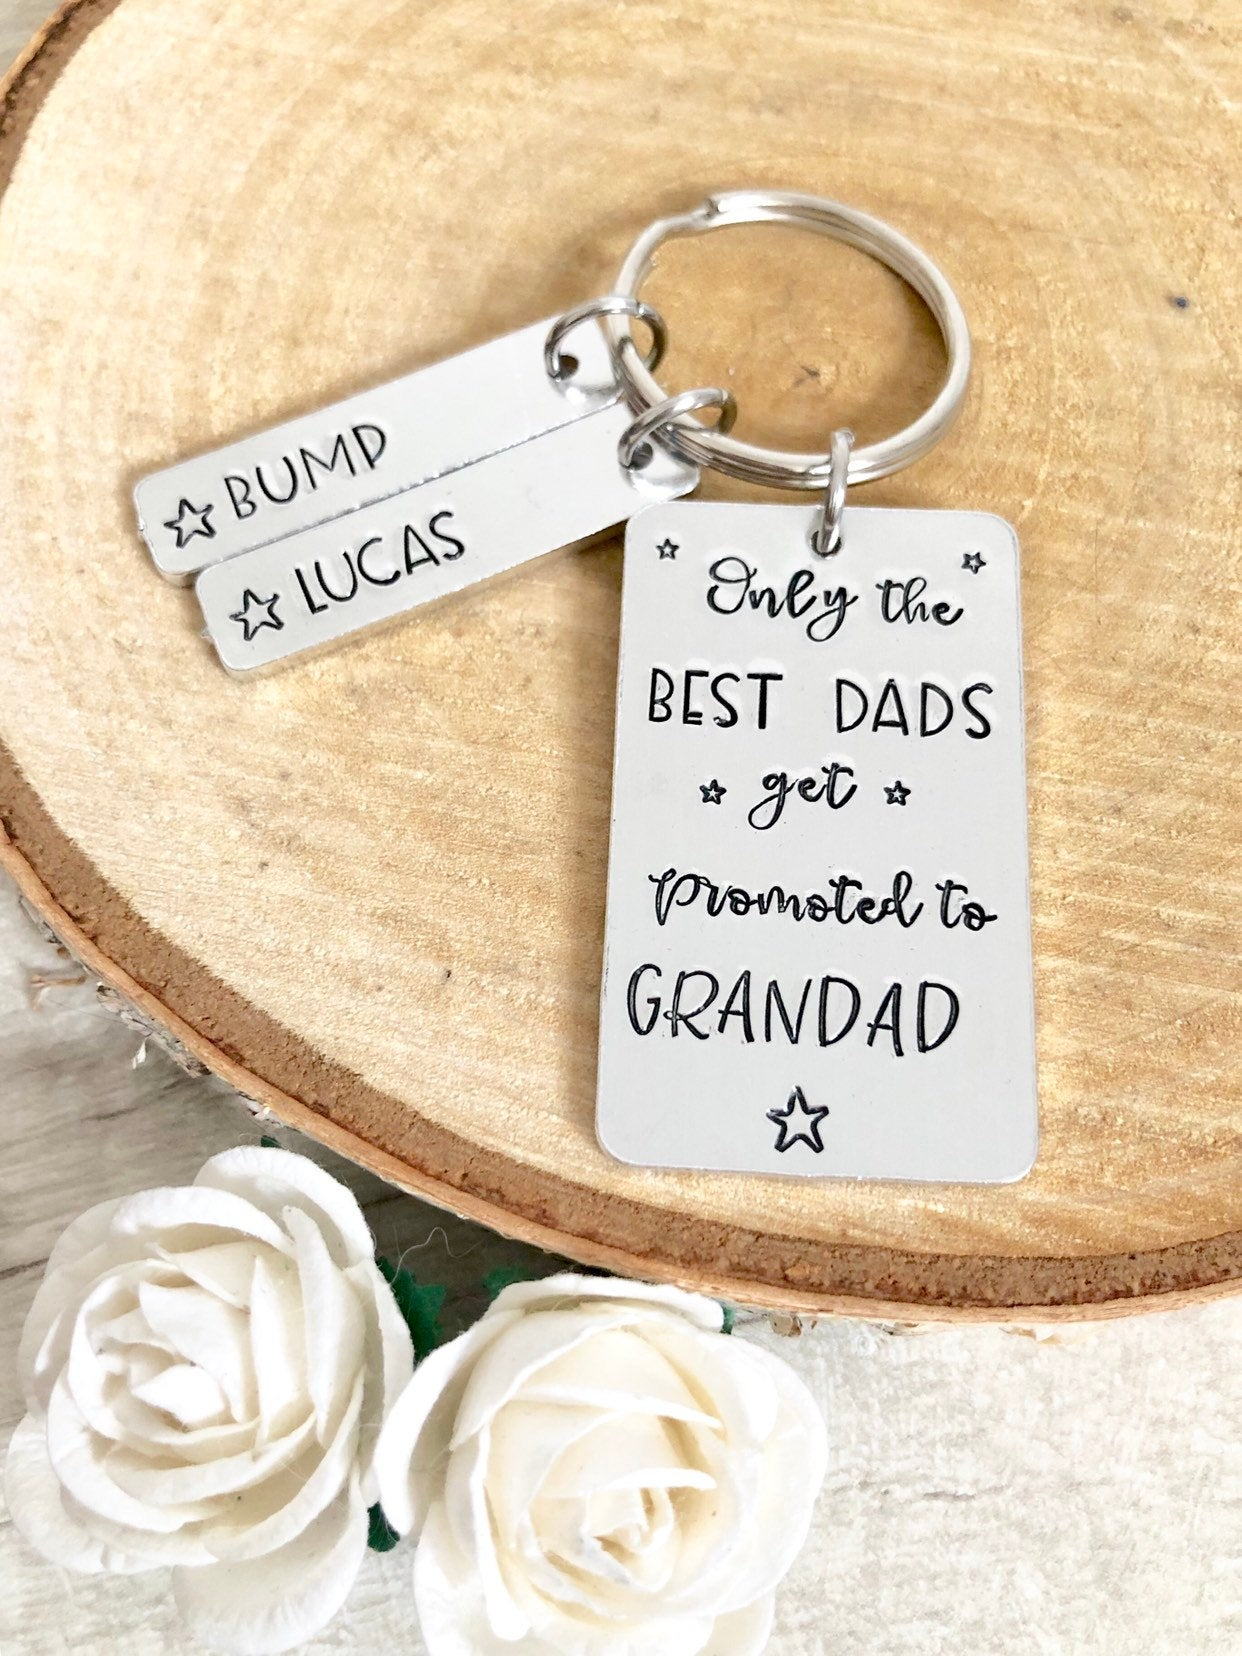 Grandpa Gift, New Grandpa, New Grandad, Grandparents Gifts, New Baby, Father's Day Gift, from kids, grandfather gift, gift for grandad,